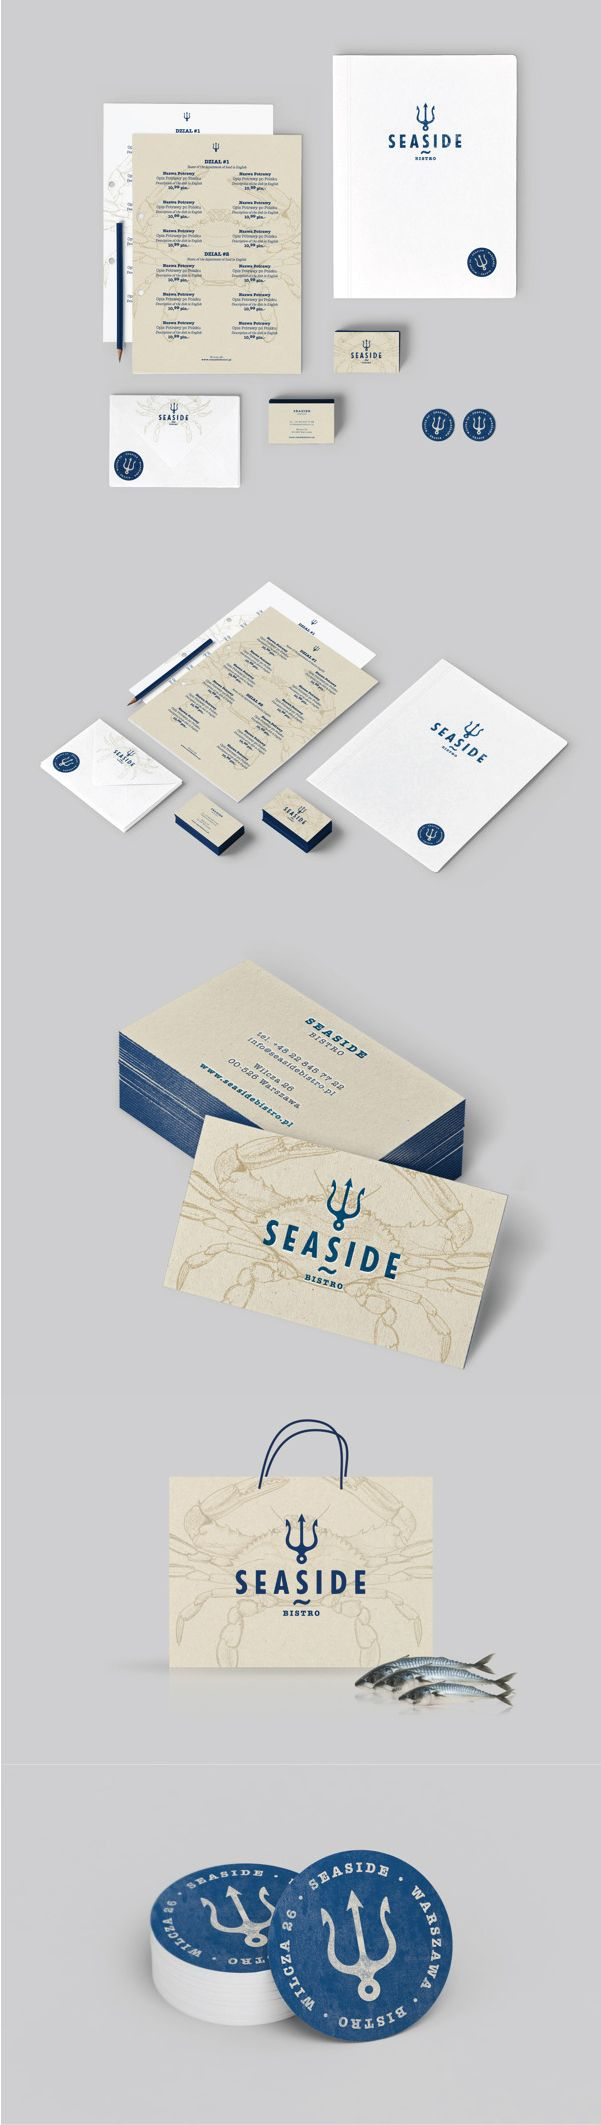 Unique Brand Identity Design on the Internet, Seaside Bistro #brandidentity #branding #identitydesign